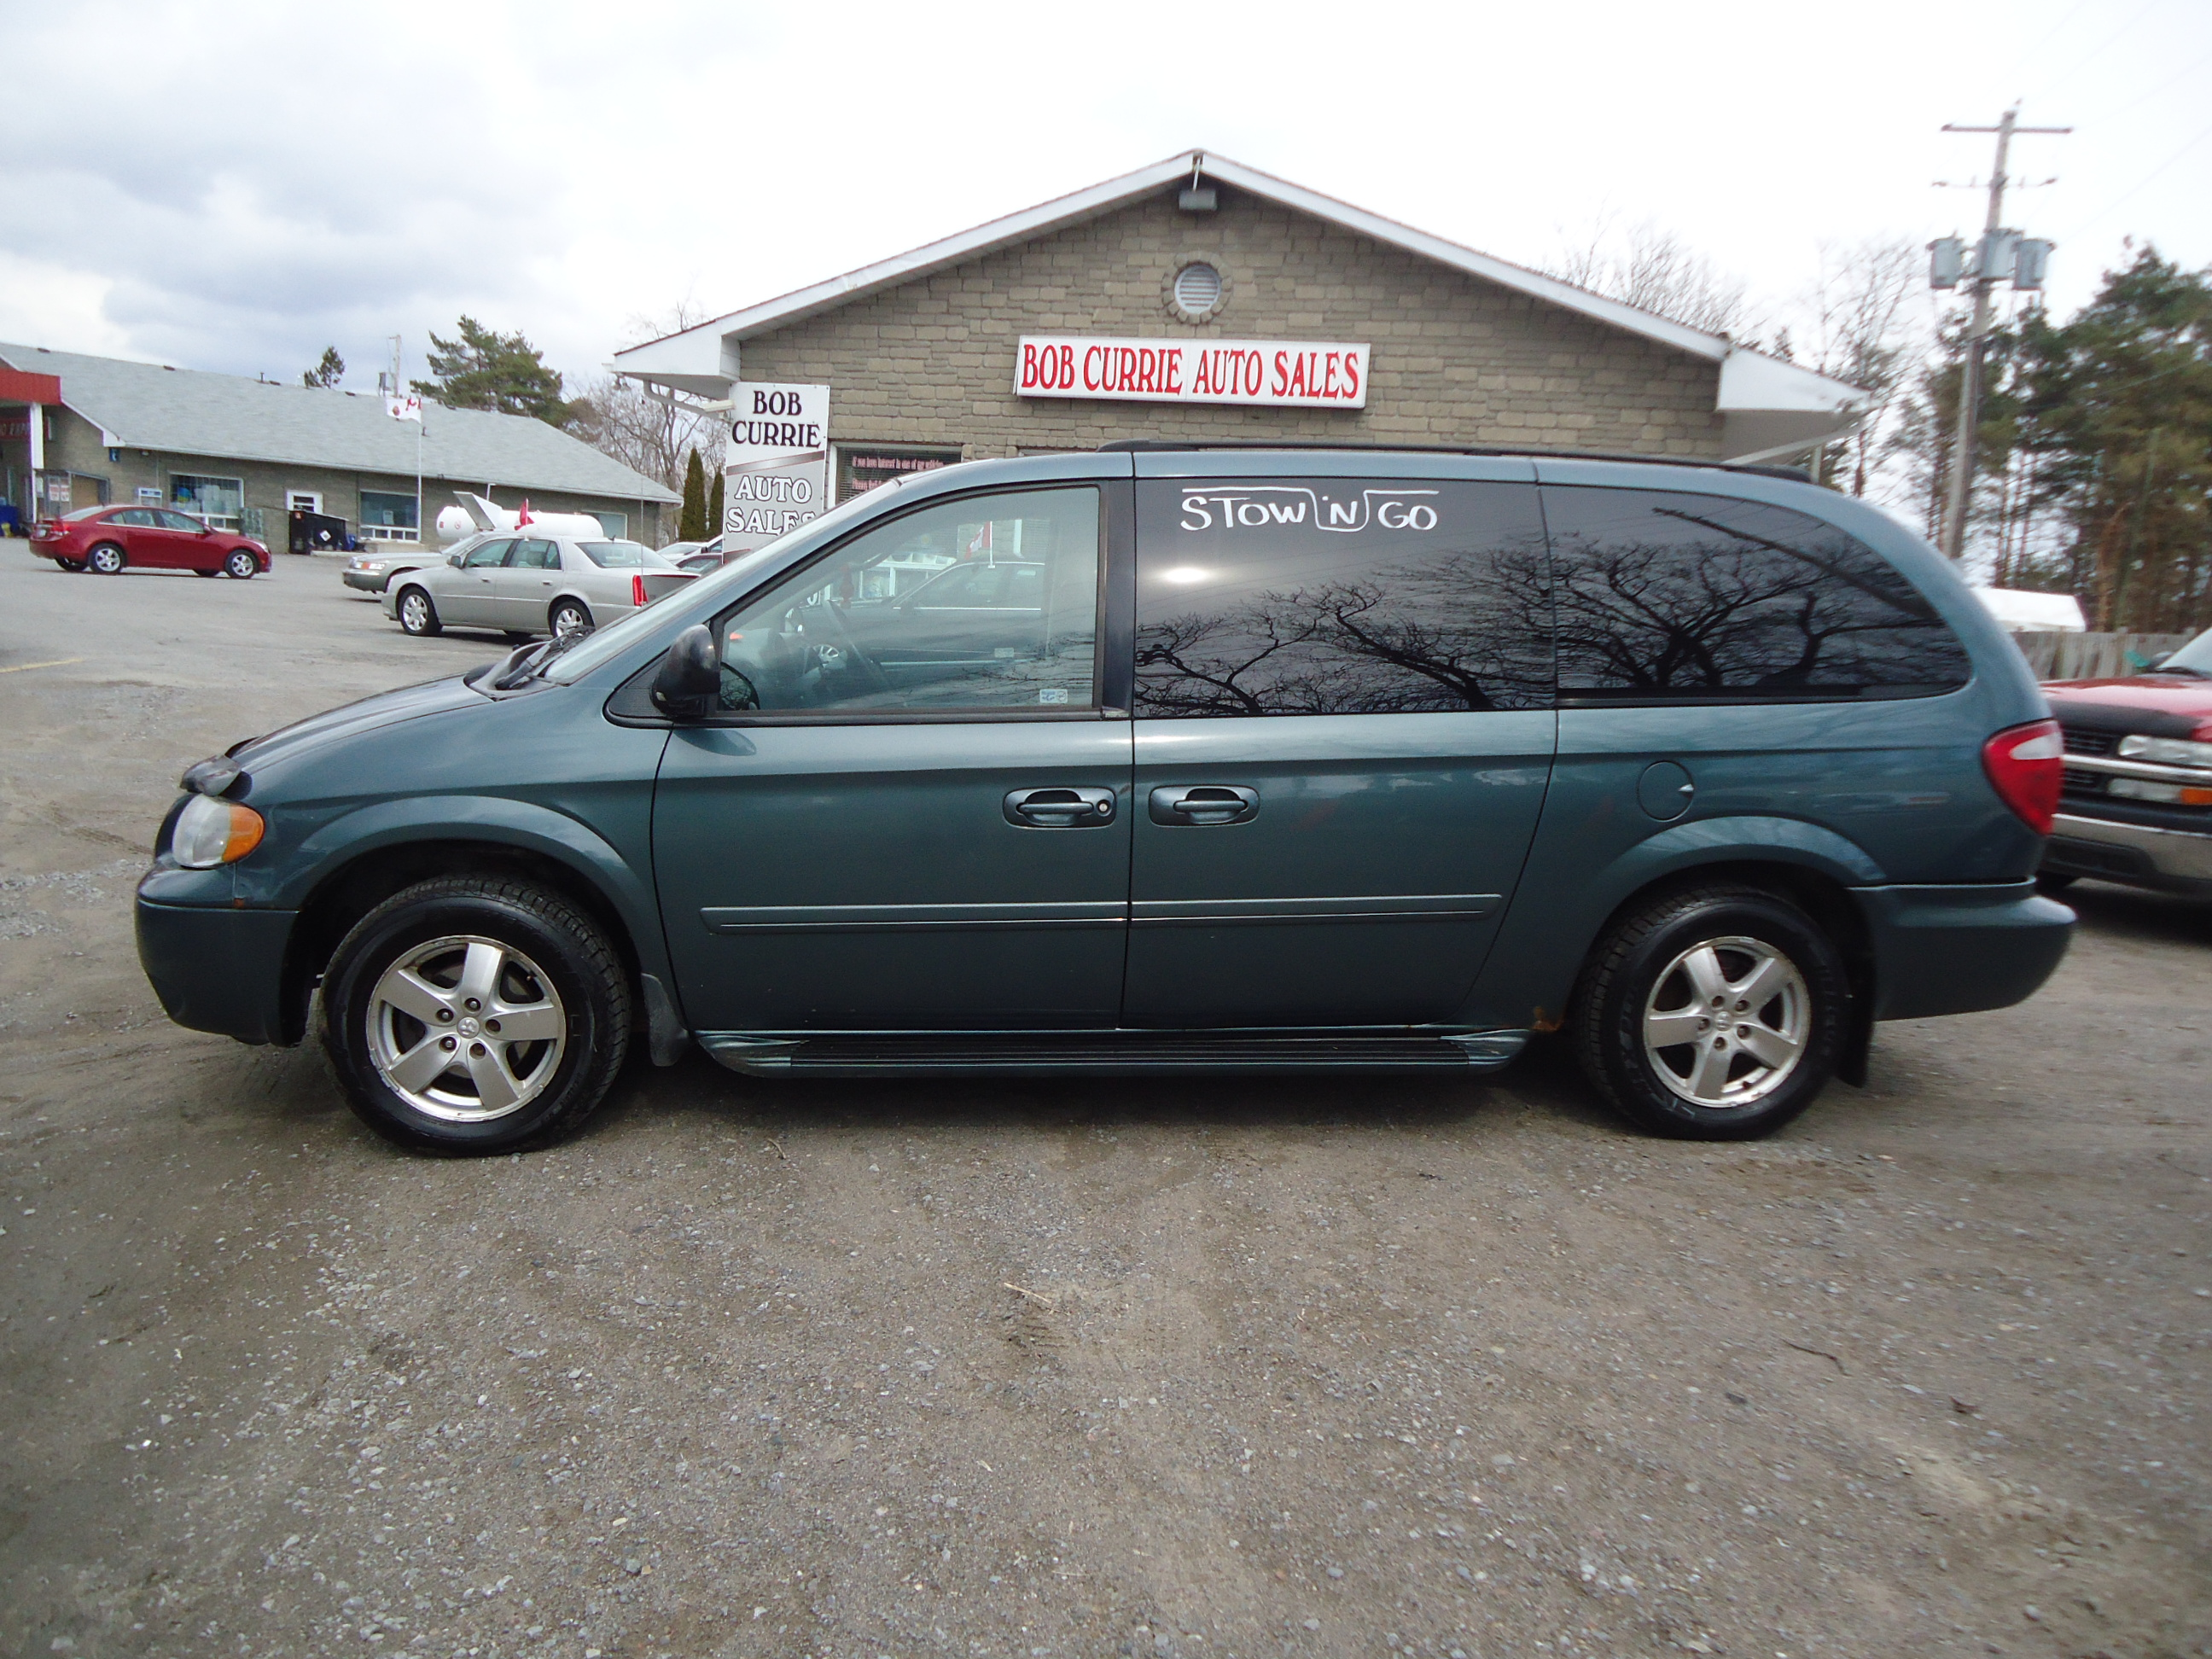 2005 dodge grand caravan stow n go bob currie auto sales. Black Bedroom Furniture Sets. Home Design Ideas